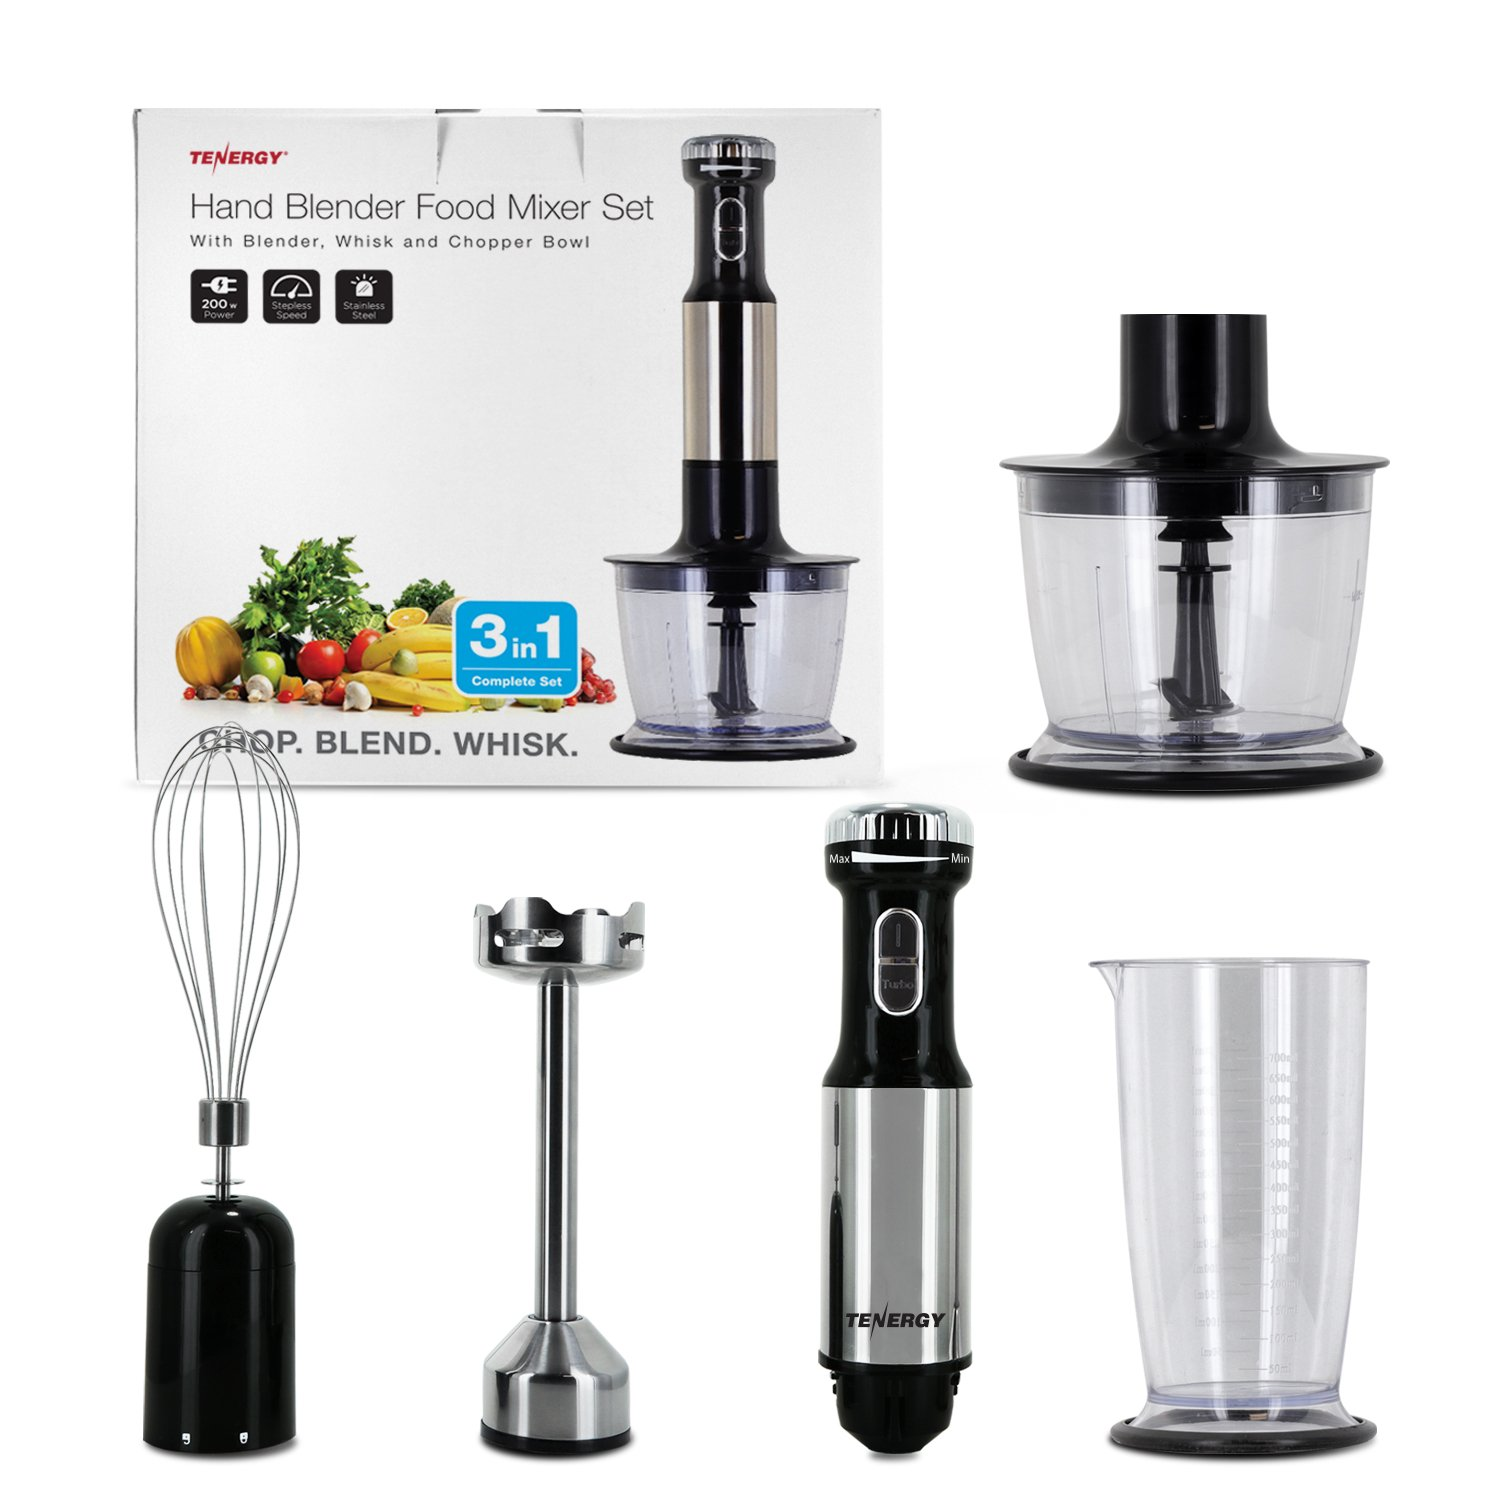 Tenergy Immersion Blender, 200W Multi-Speed Food Mixer Set with Stainless Steel Hand Blender, Chopper, Whisk, Beaker Attachment for Soup, Sauce, Baby Food, Purée and Emulsify by Tenergy (Image #8)